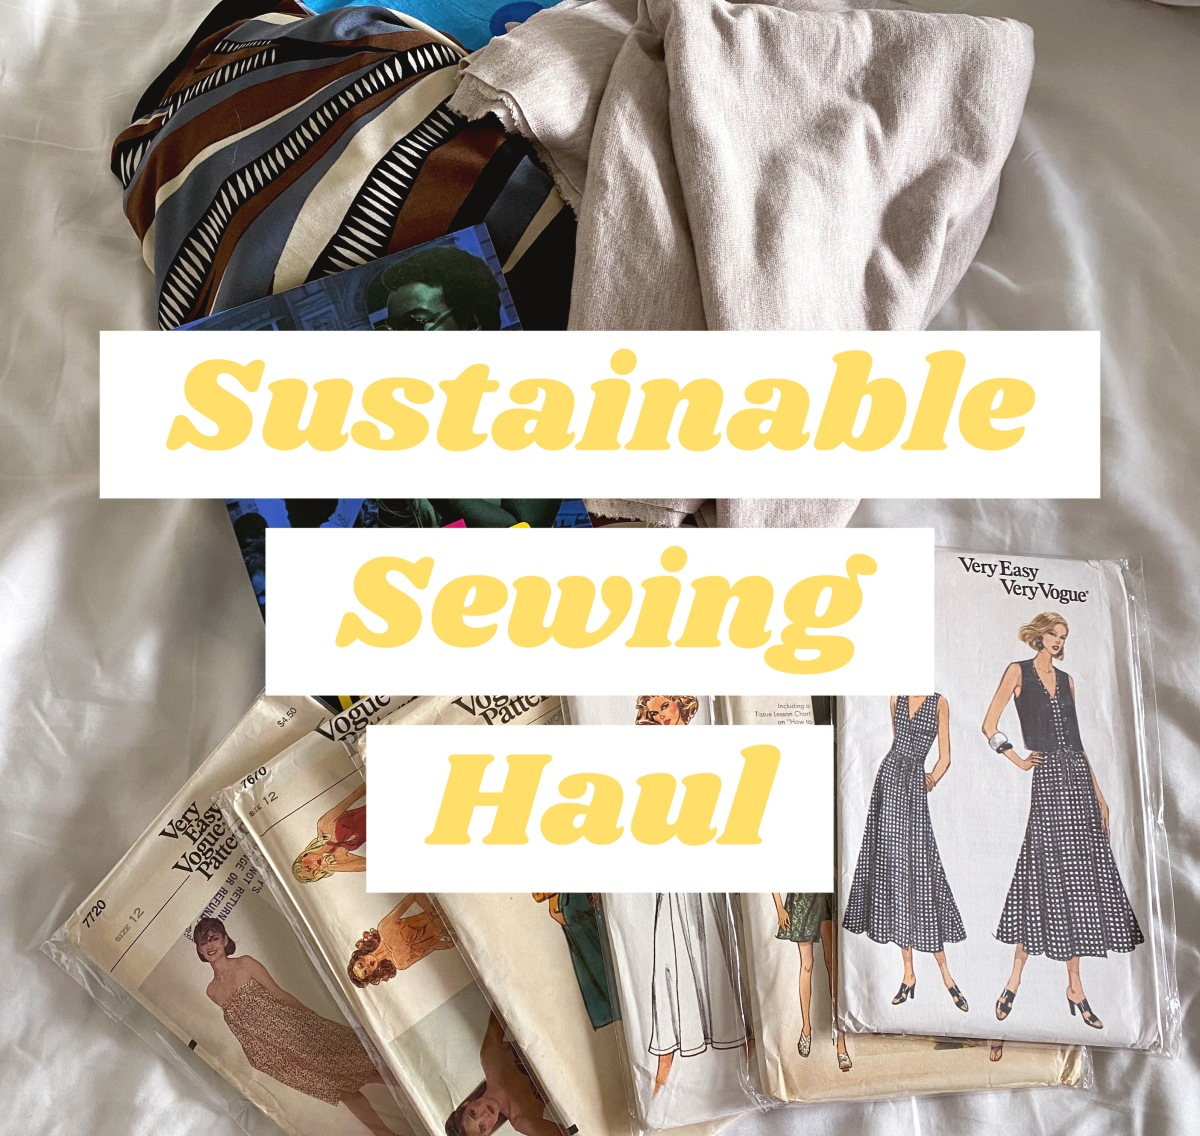 A Sustainable SewingHaul